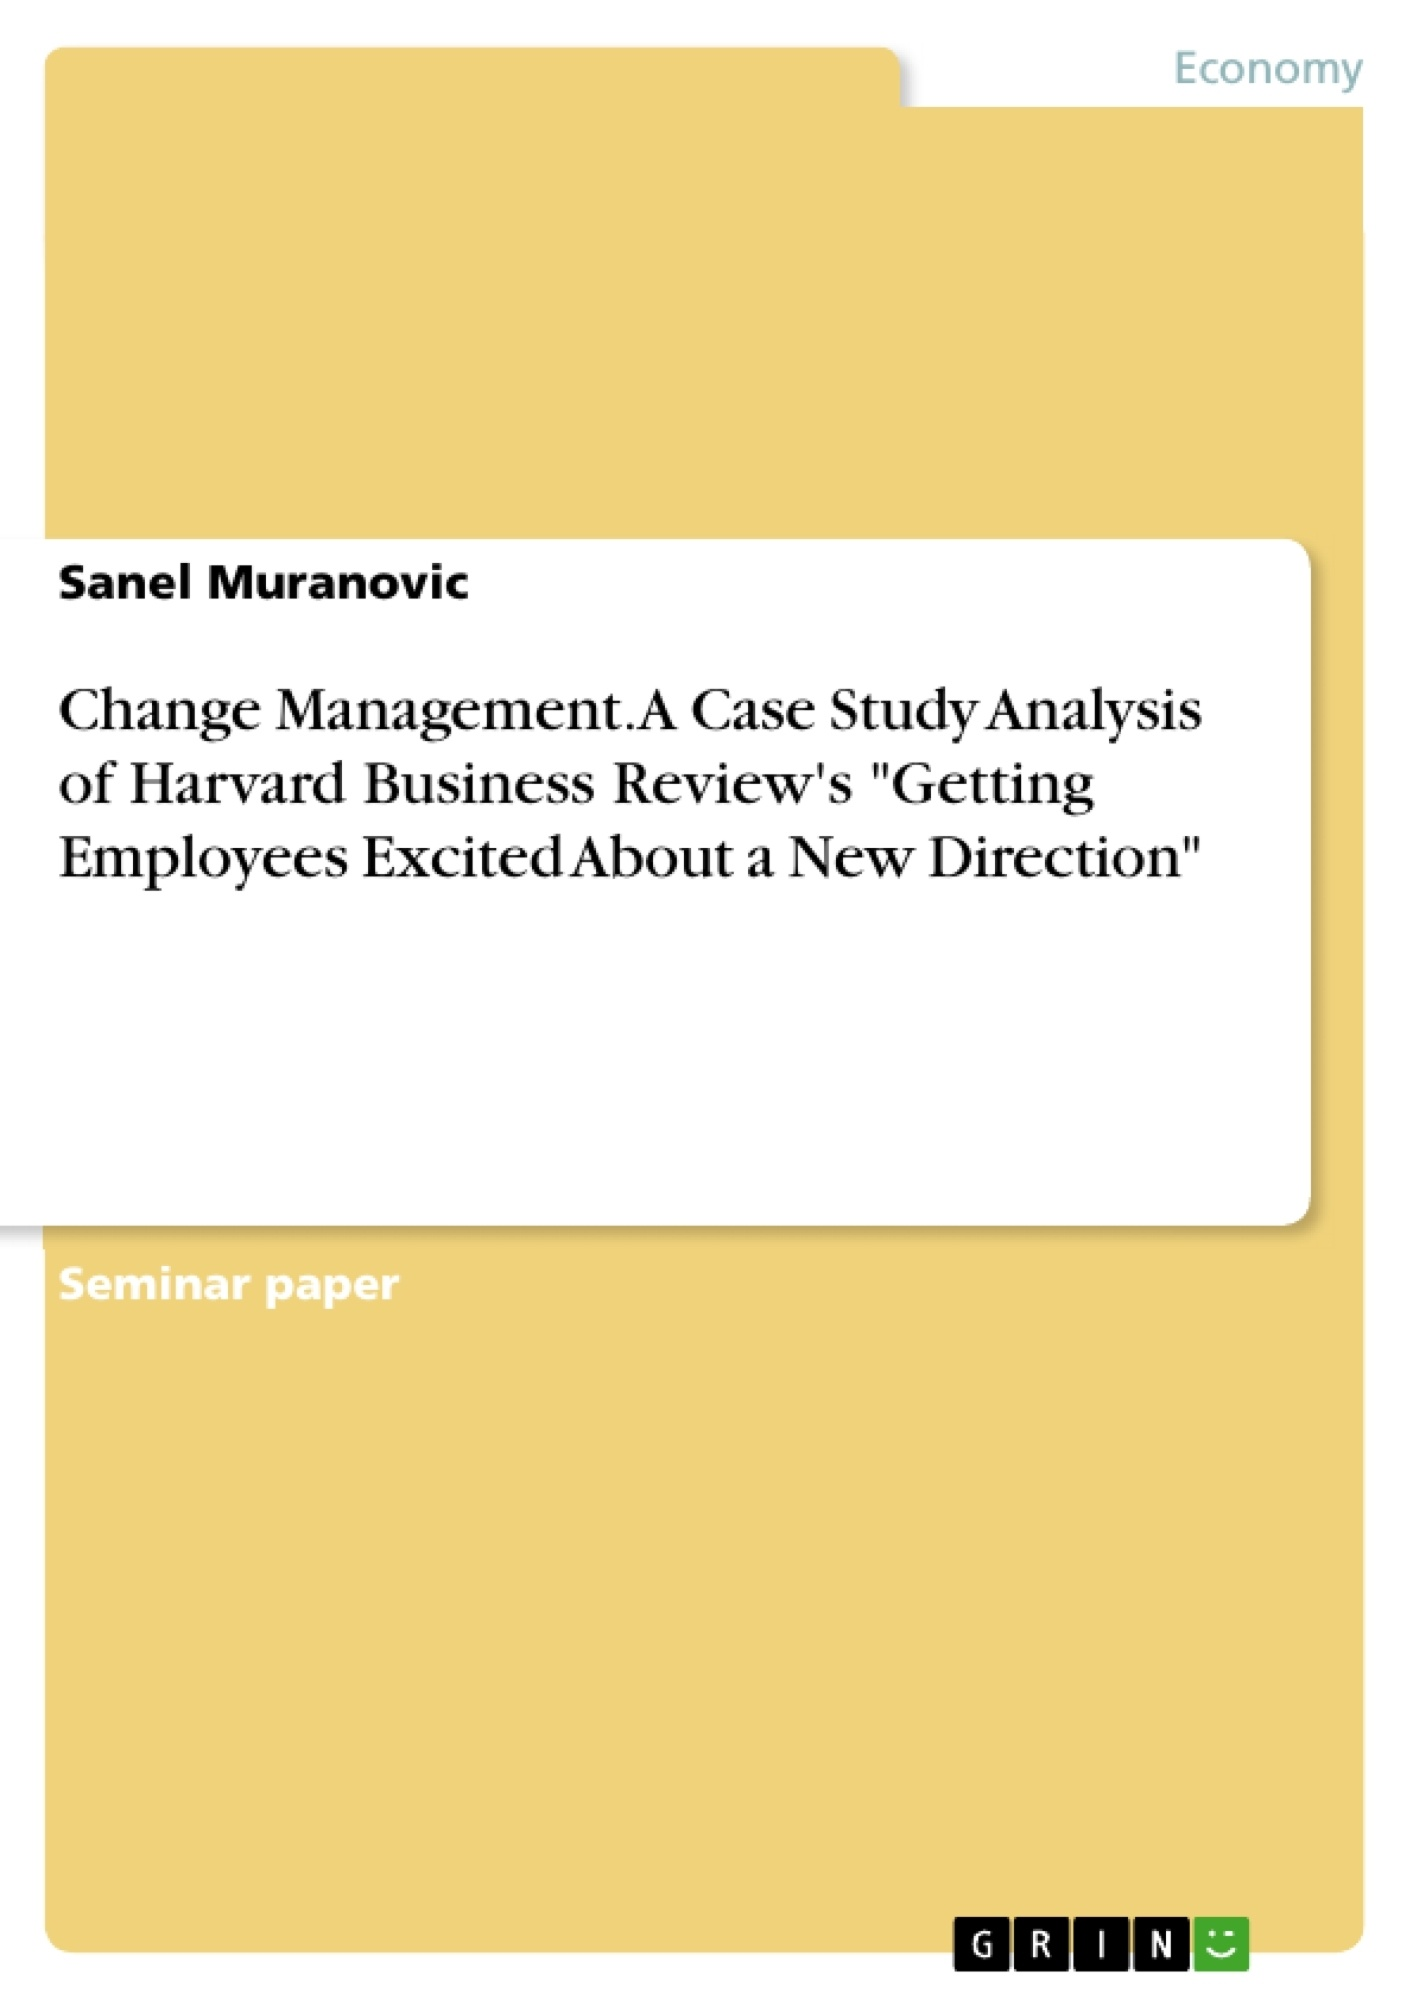 GRIN - Change Management  A Case Study Analysis of Harvard Business  Review's